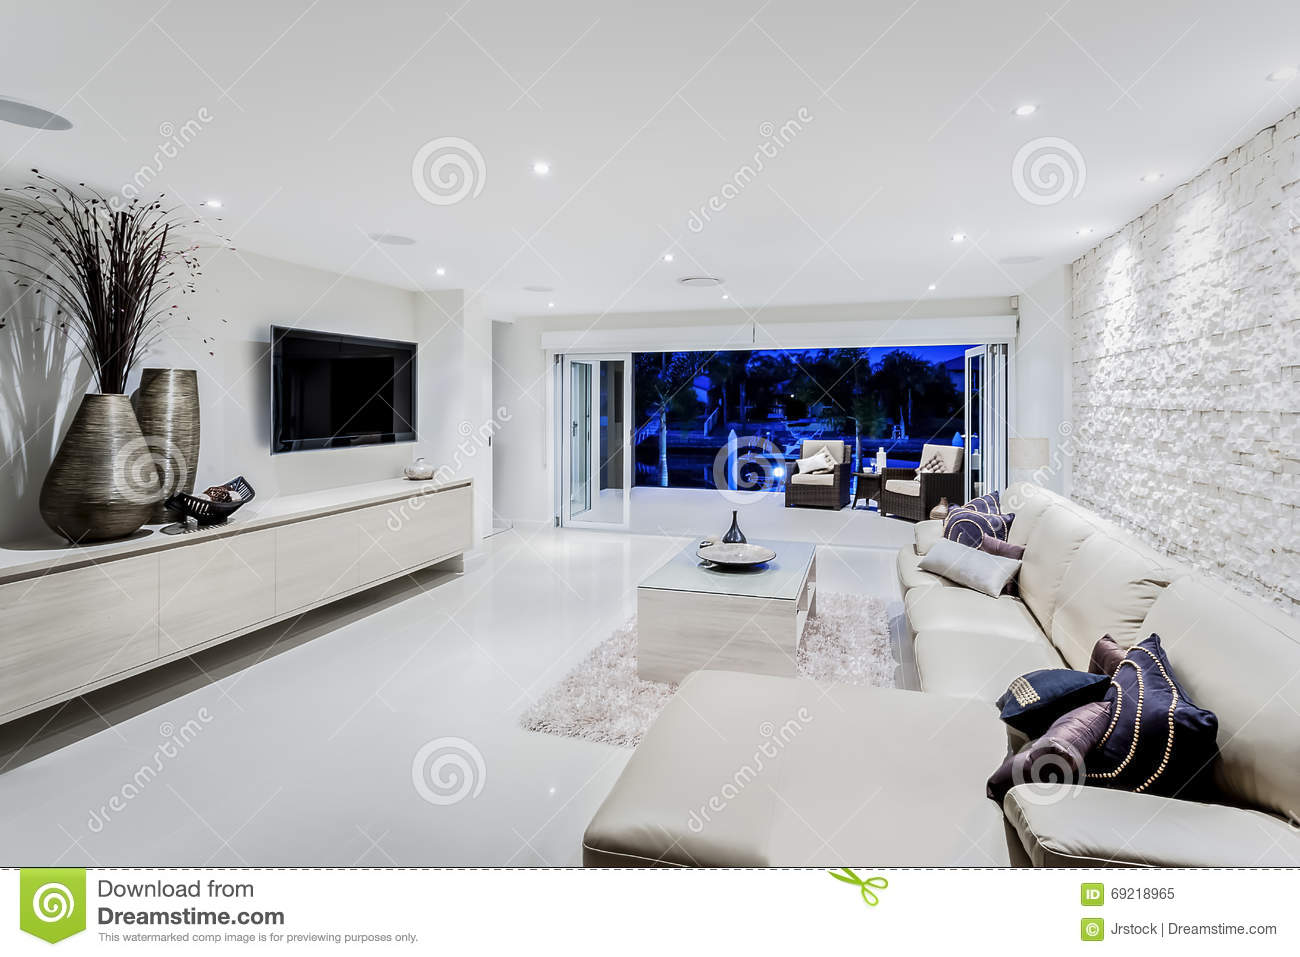 Modern living room at night with sofas and pillows